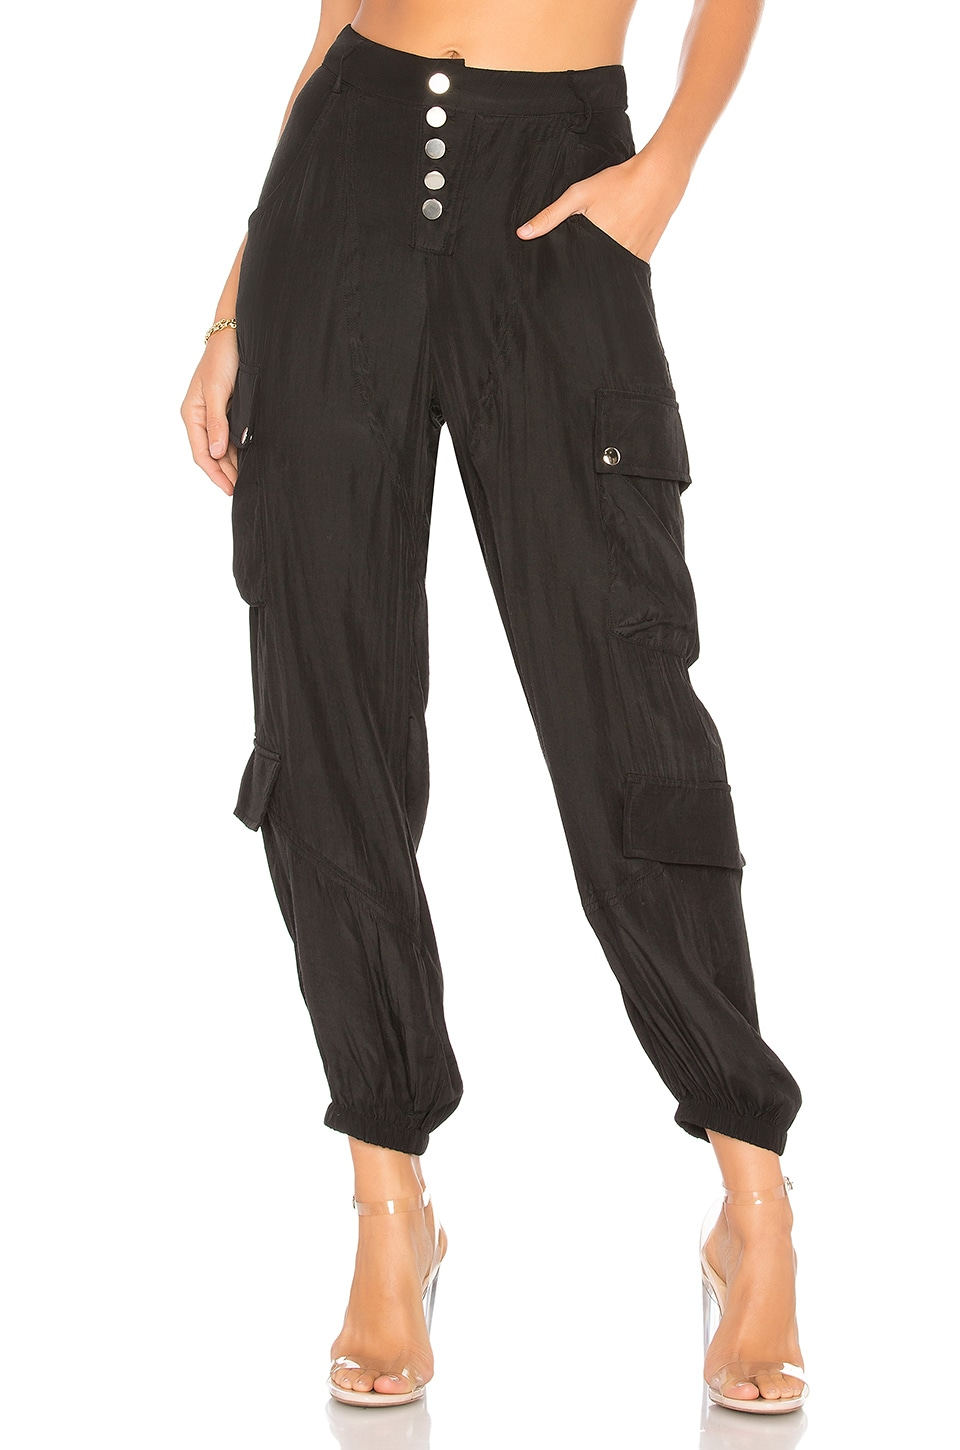 LIONESS Cypress Pant in Black